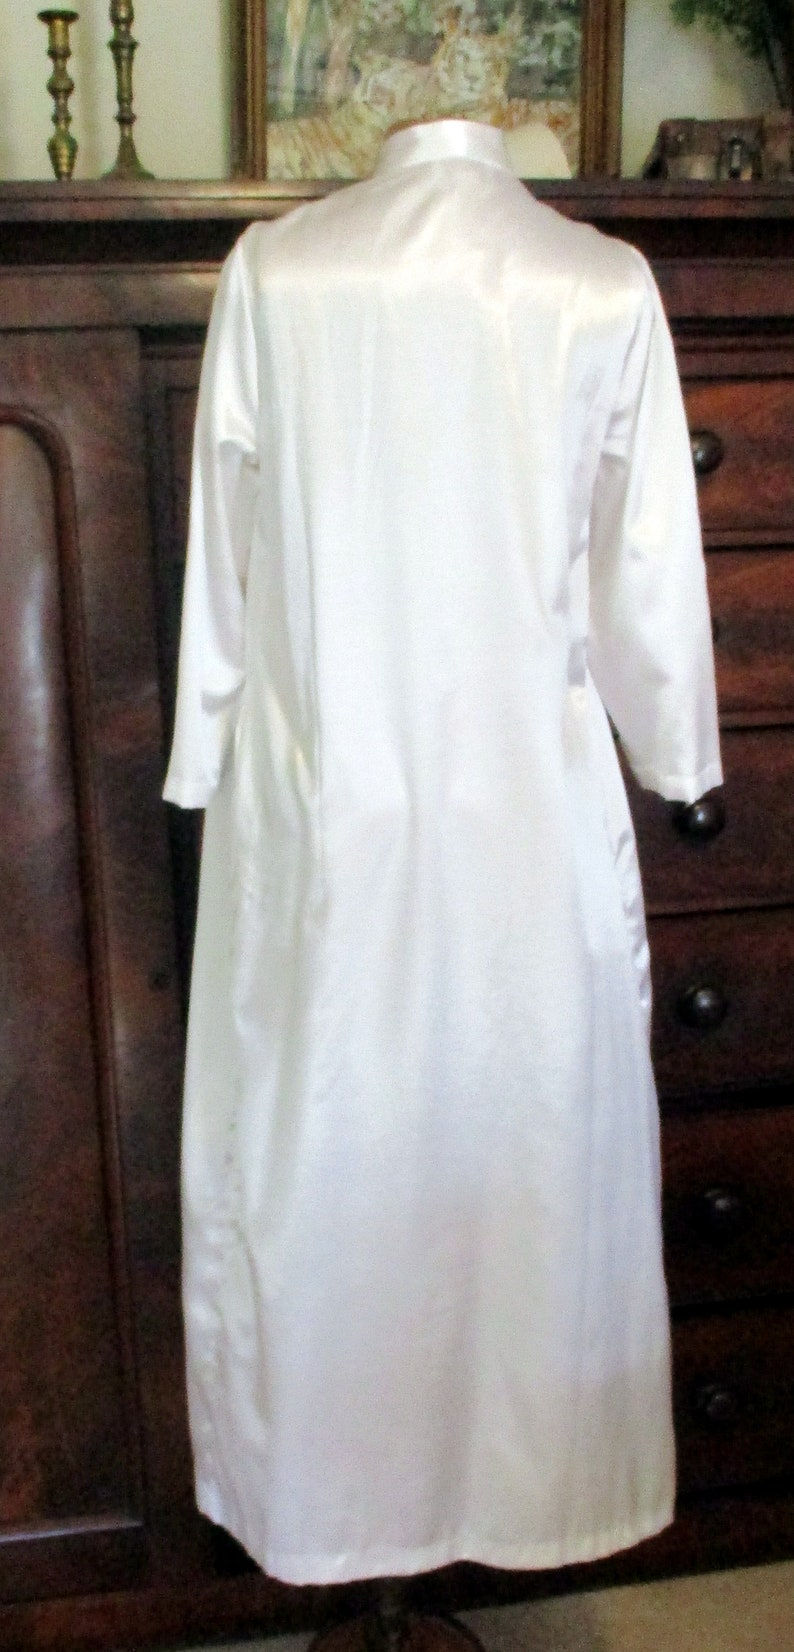 Saybury Nightgown Smocked Night Gown Robe Long Sleeve Pockets Flannel Lined 2 Available One Blue One White